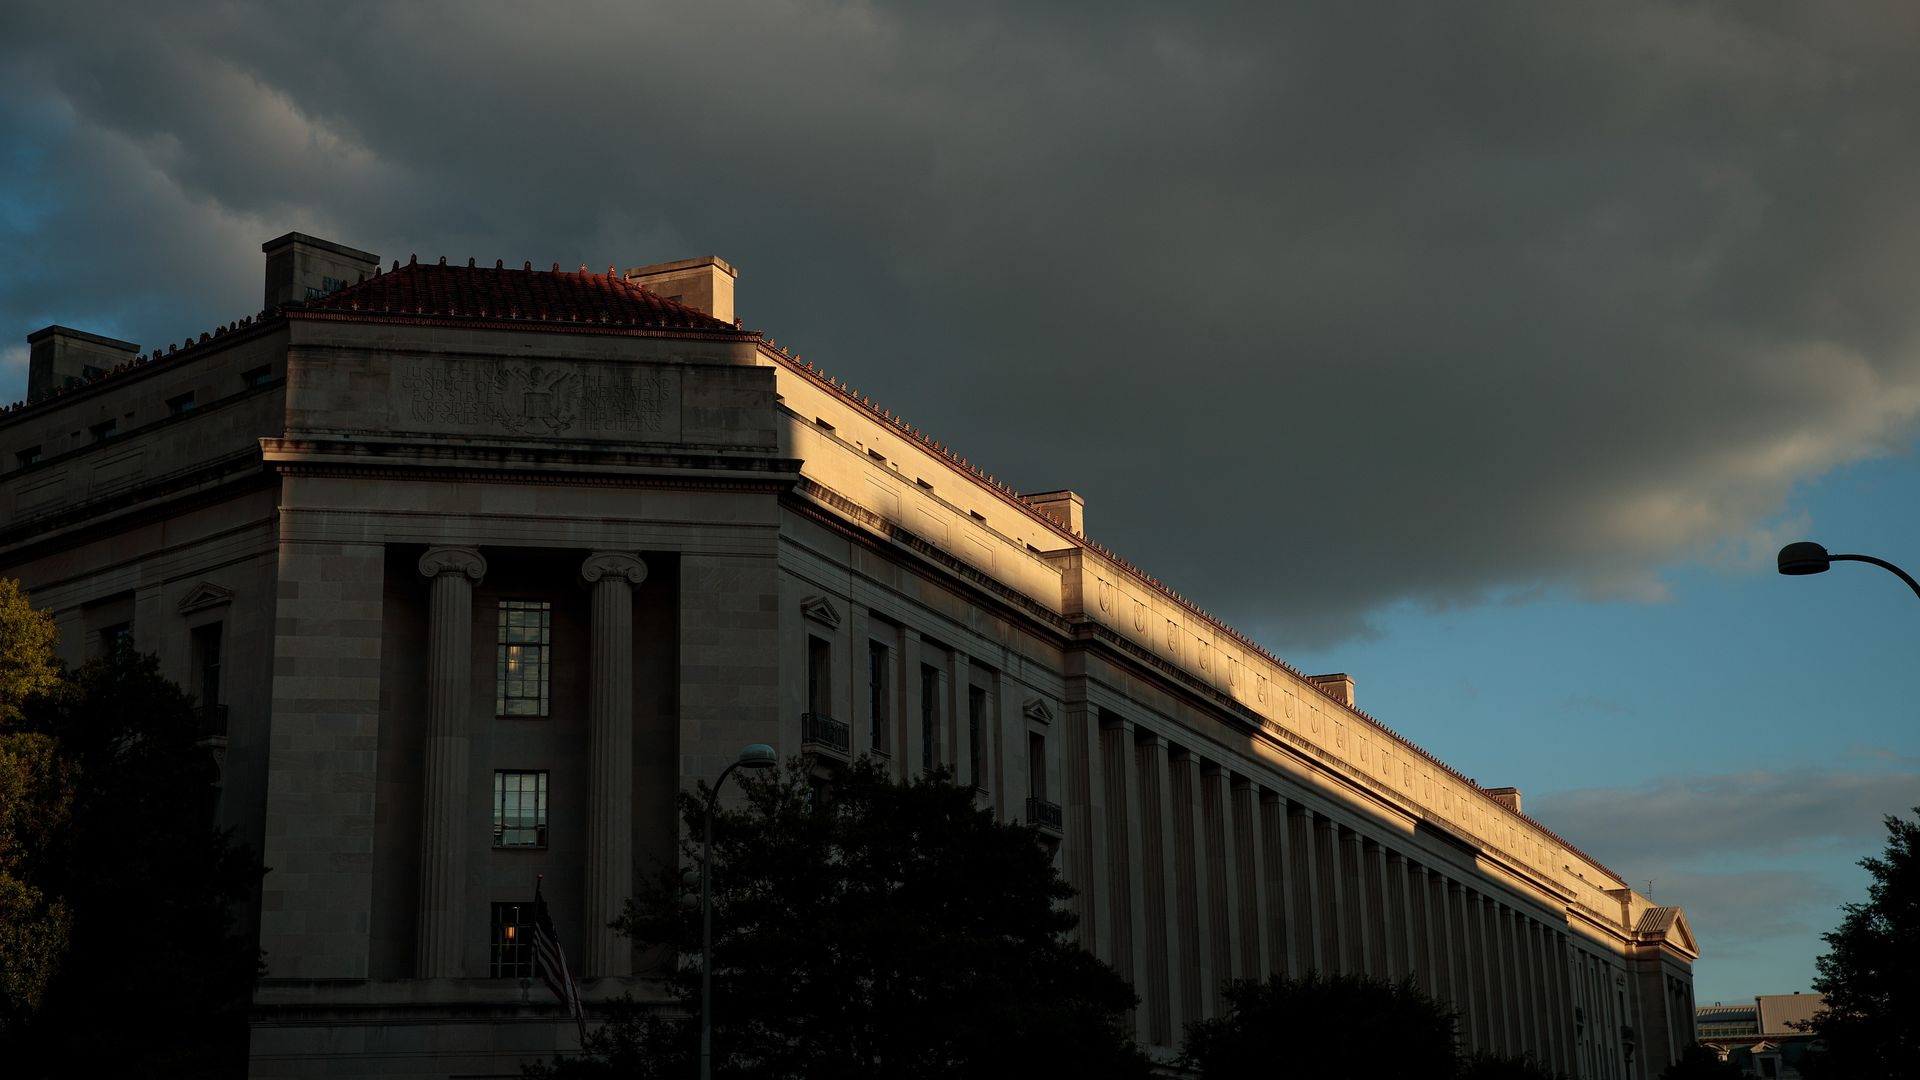 The headquarters of the Department of Justice under a dark sky